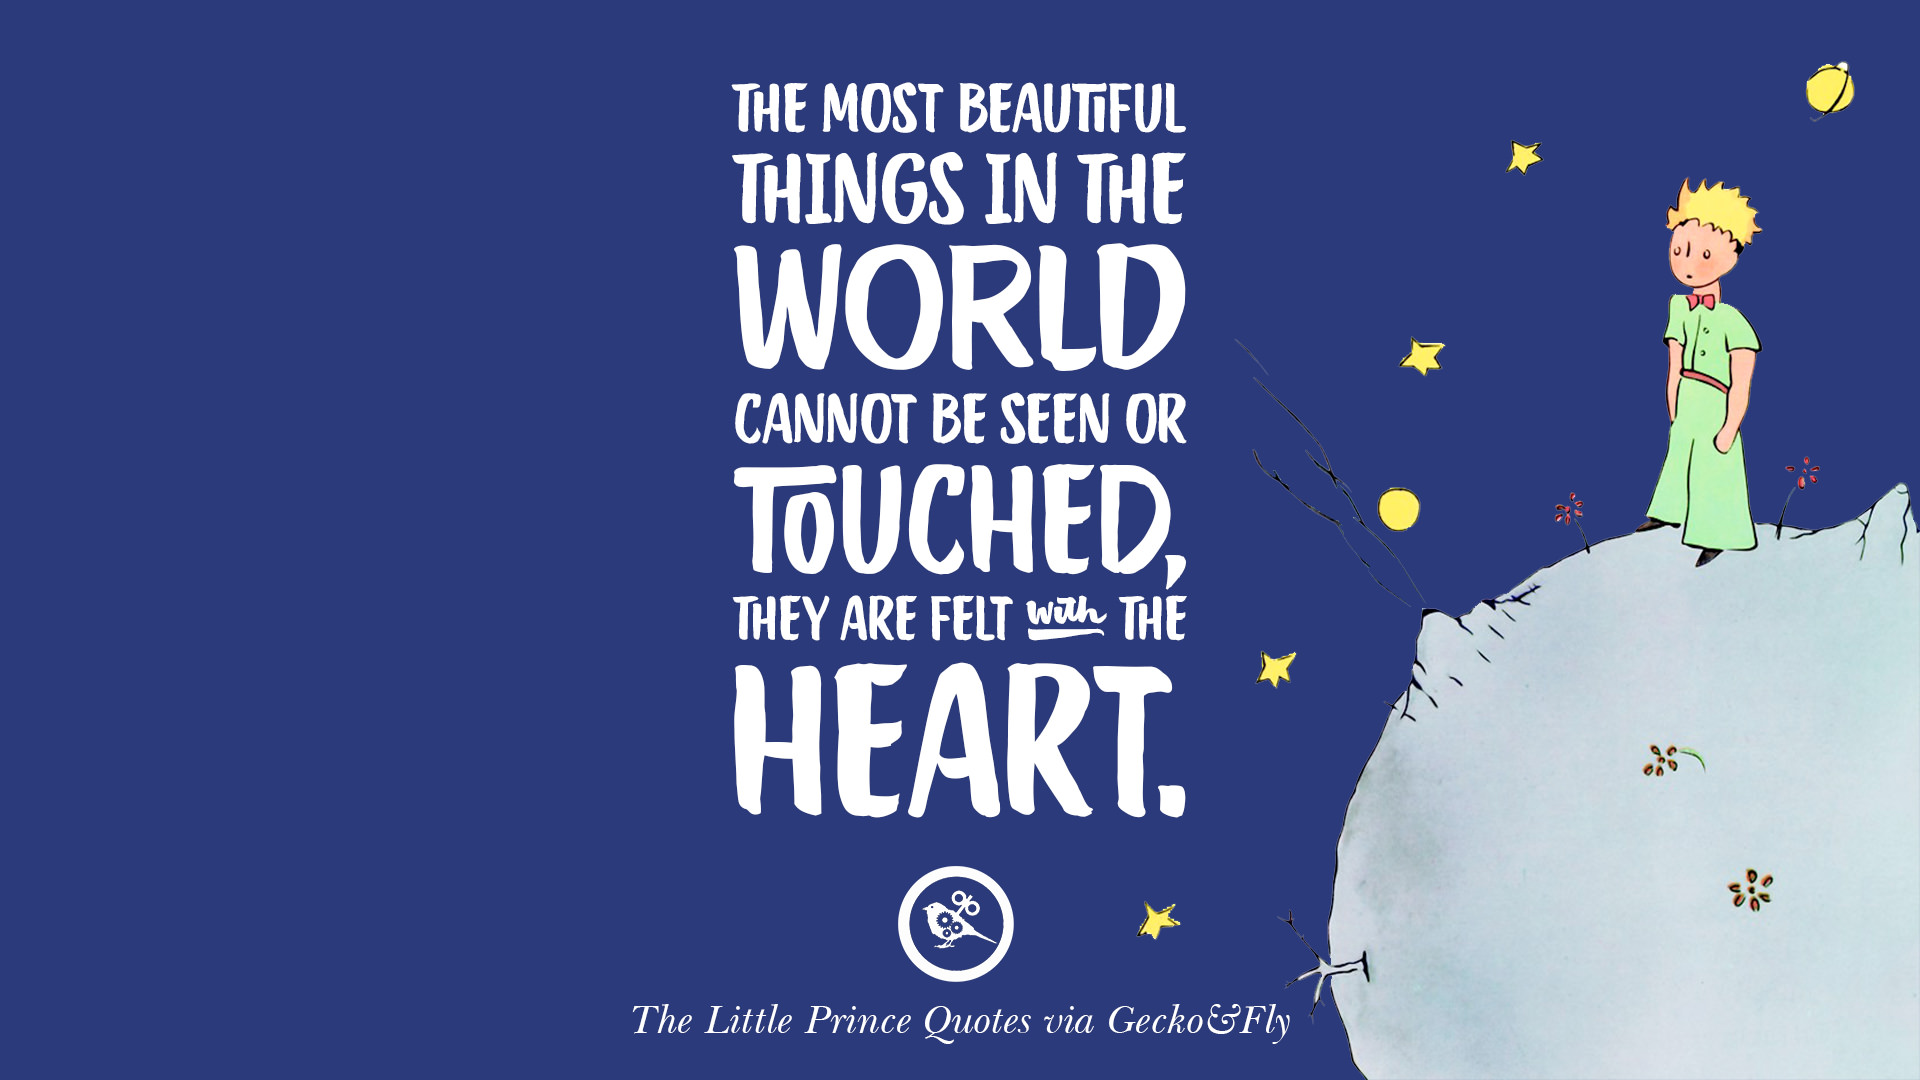 12 Quotes By The Little Prince On Life Lesson True Love And